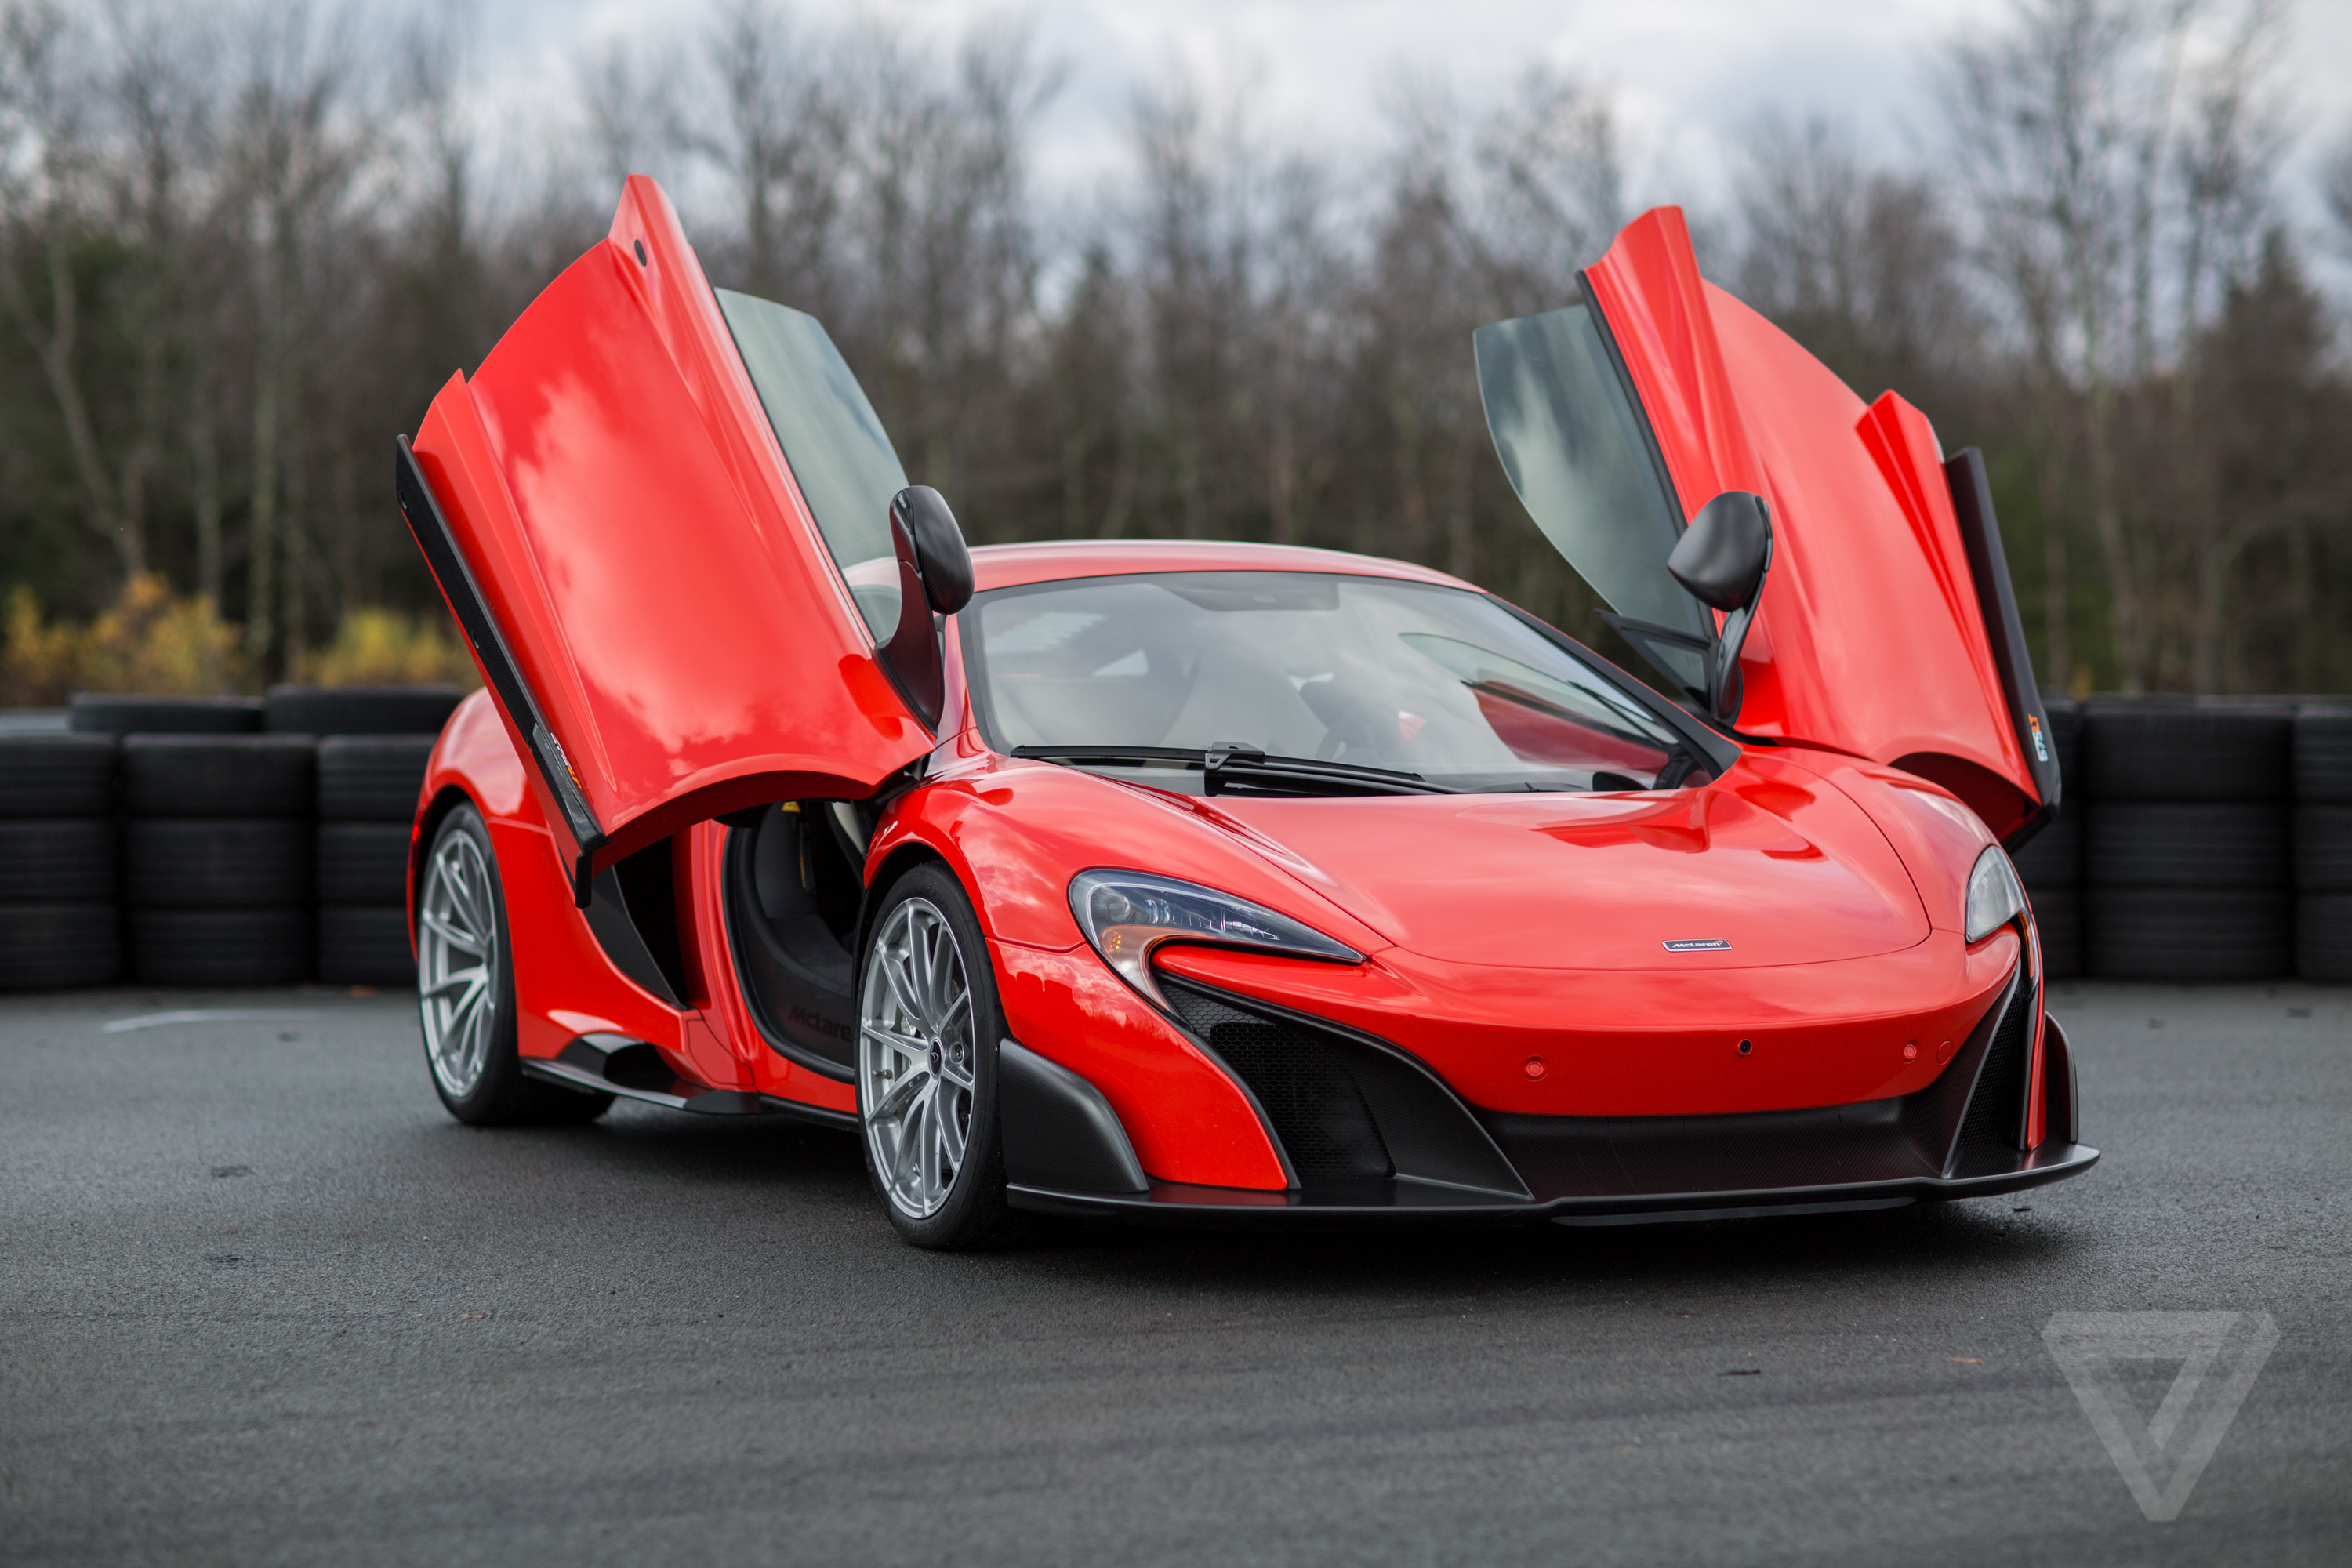 Mclaren S Perfect Supercar Tearing Up The Track In The